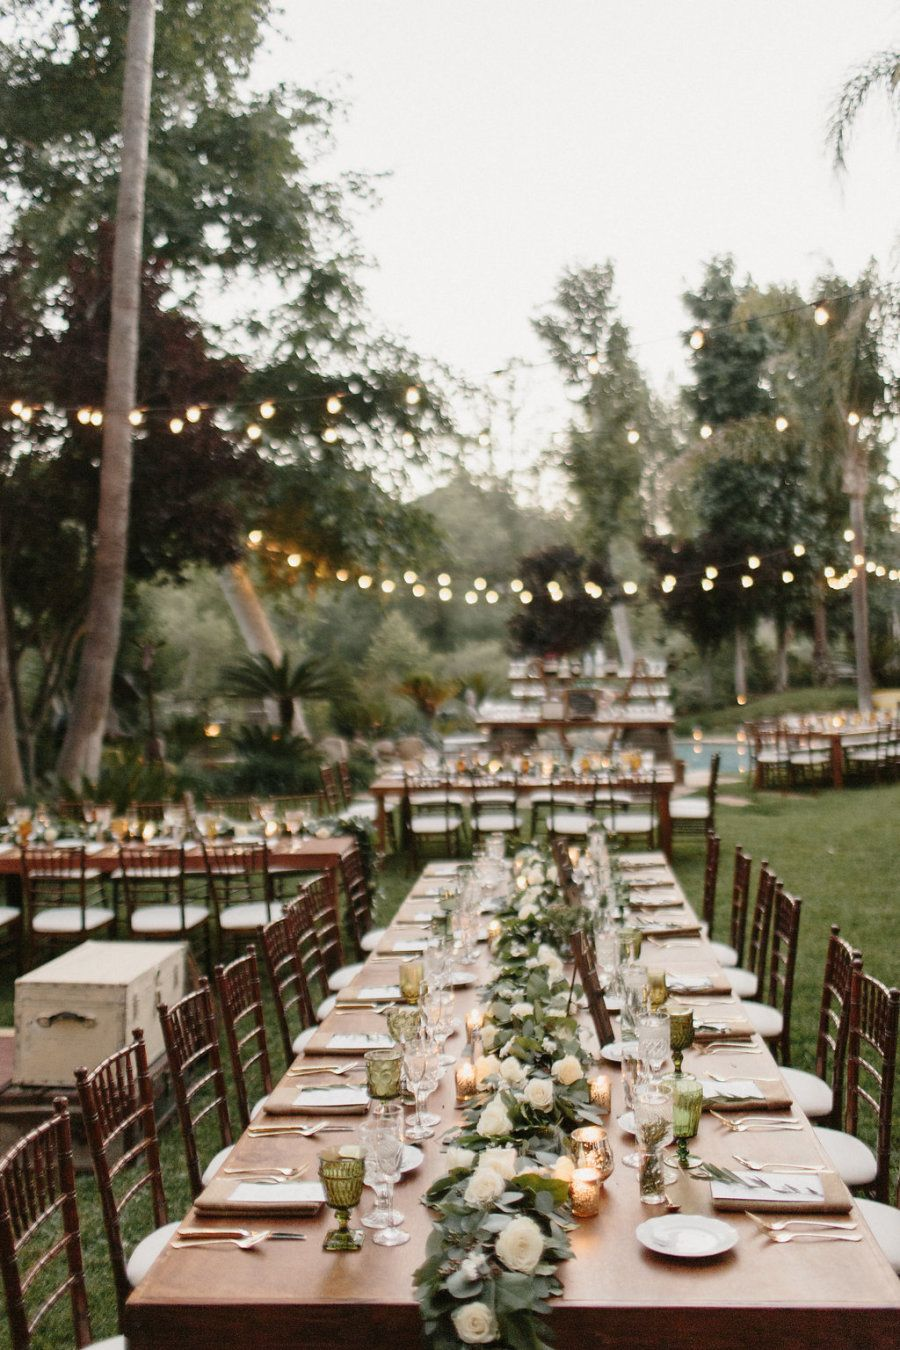 Wedding Dreams Became Reality With This Backyard Bash In 2019